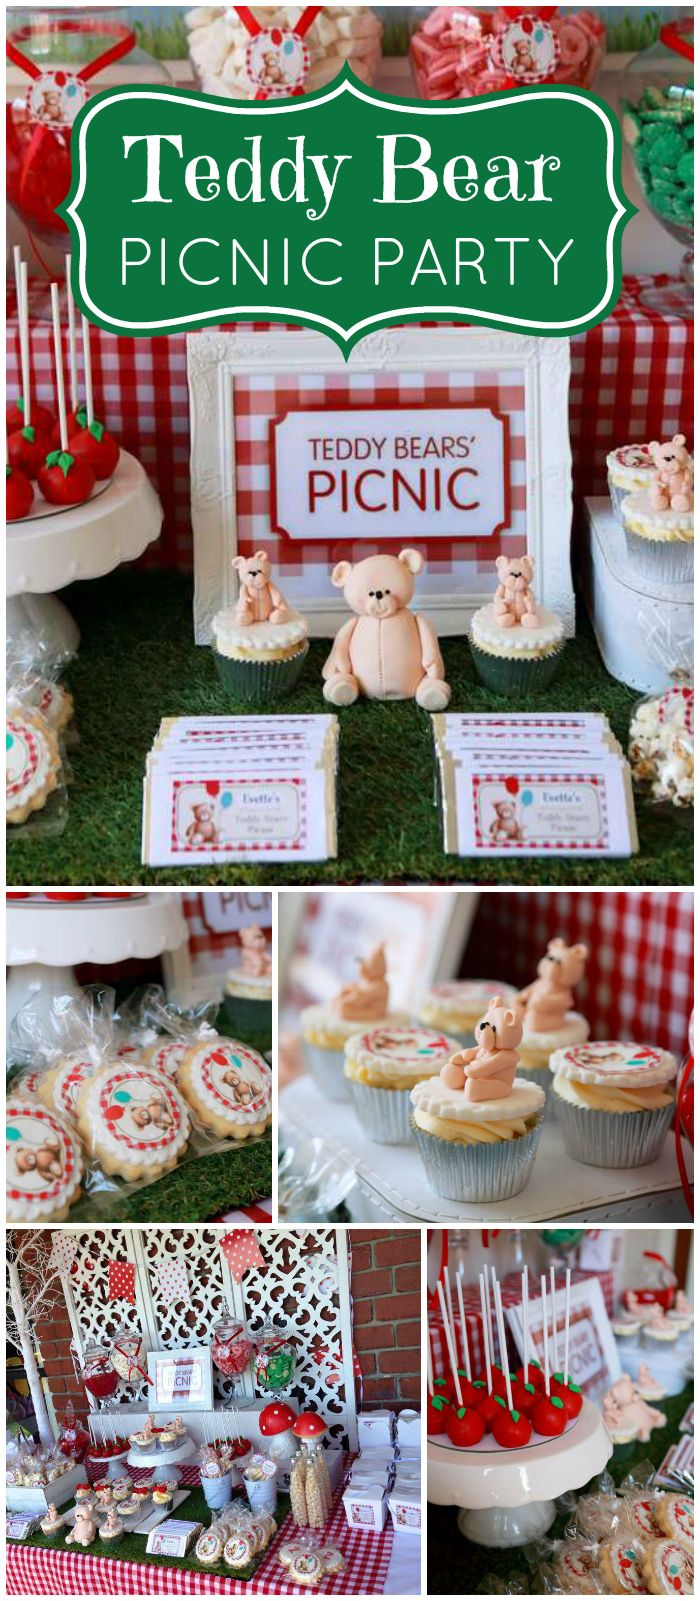 Such a cute teddy bear picnic party in red and green! See more party planning ideas at CatchMyParty.com!